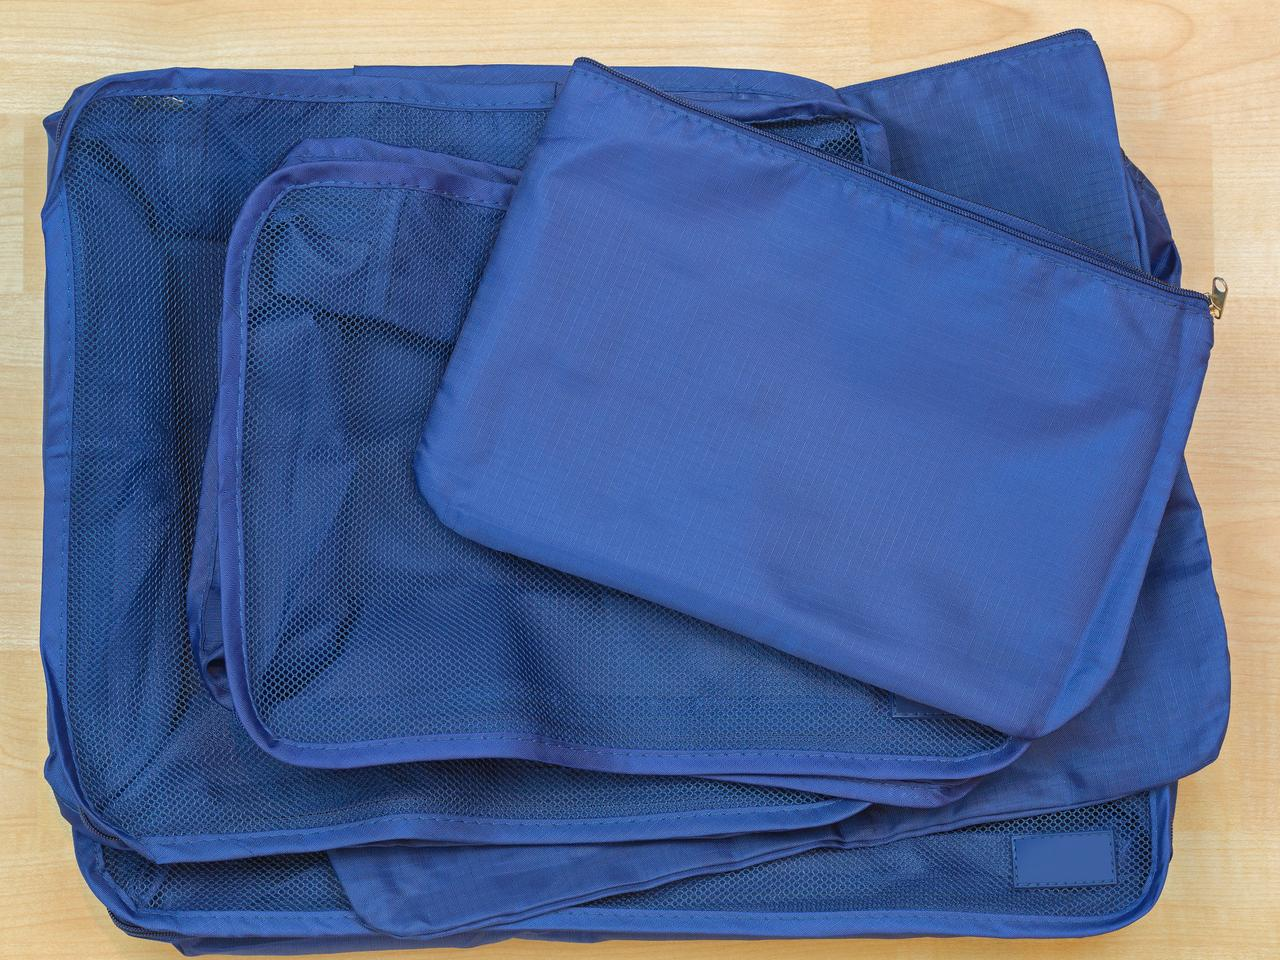 Different blue cube bags, set of travel organizer to help packing luggage easy, well organized